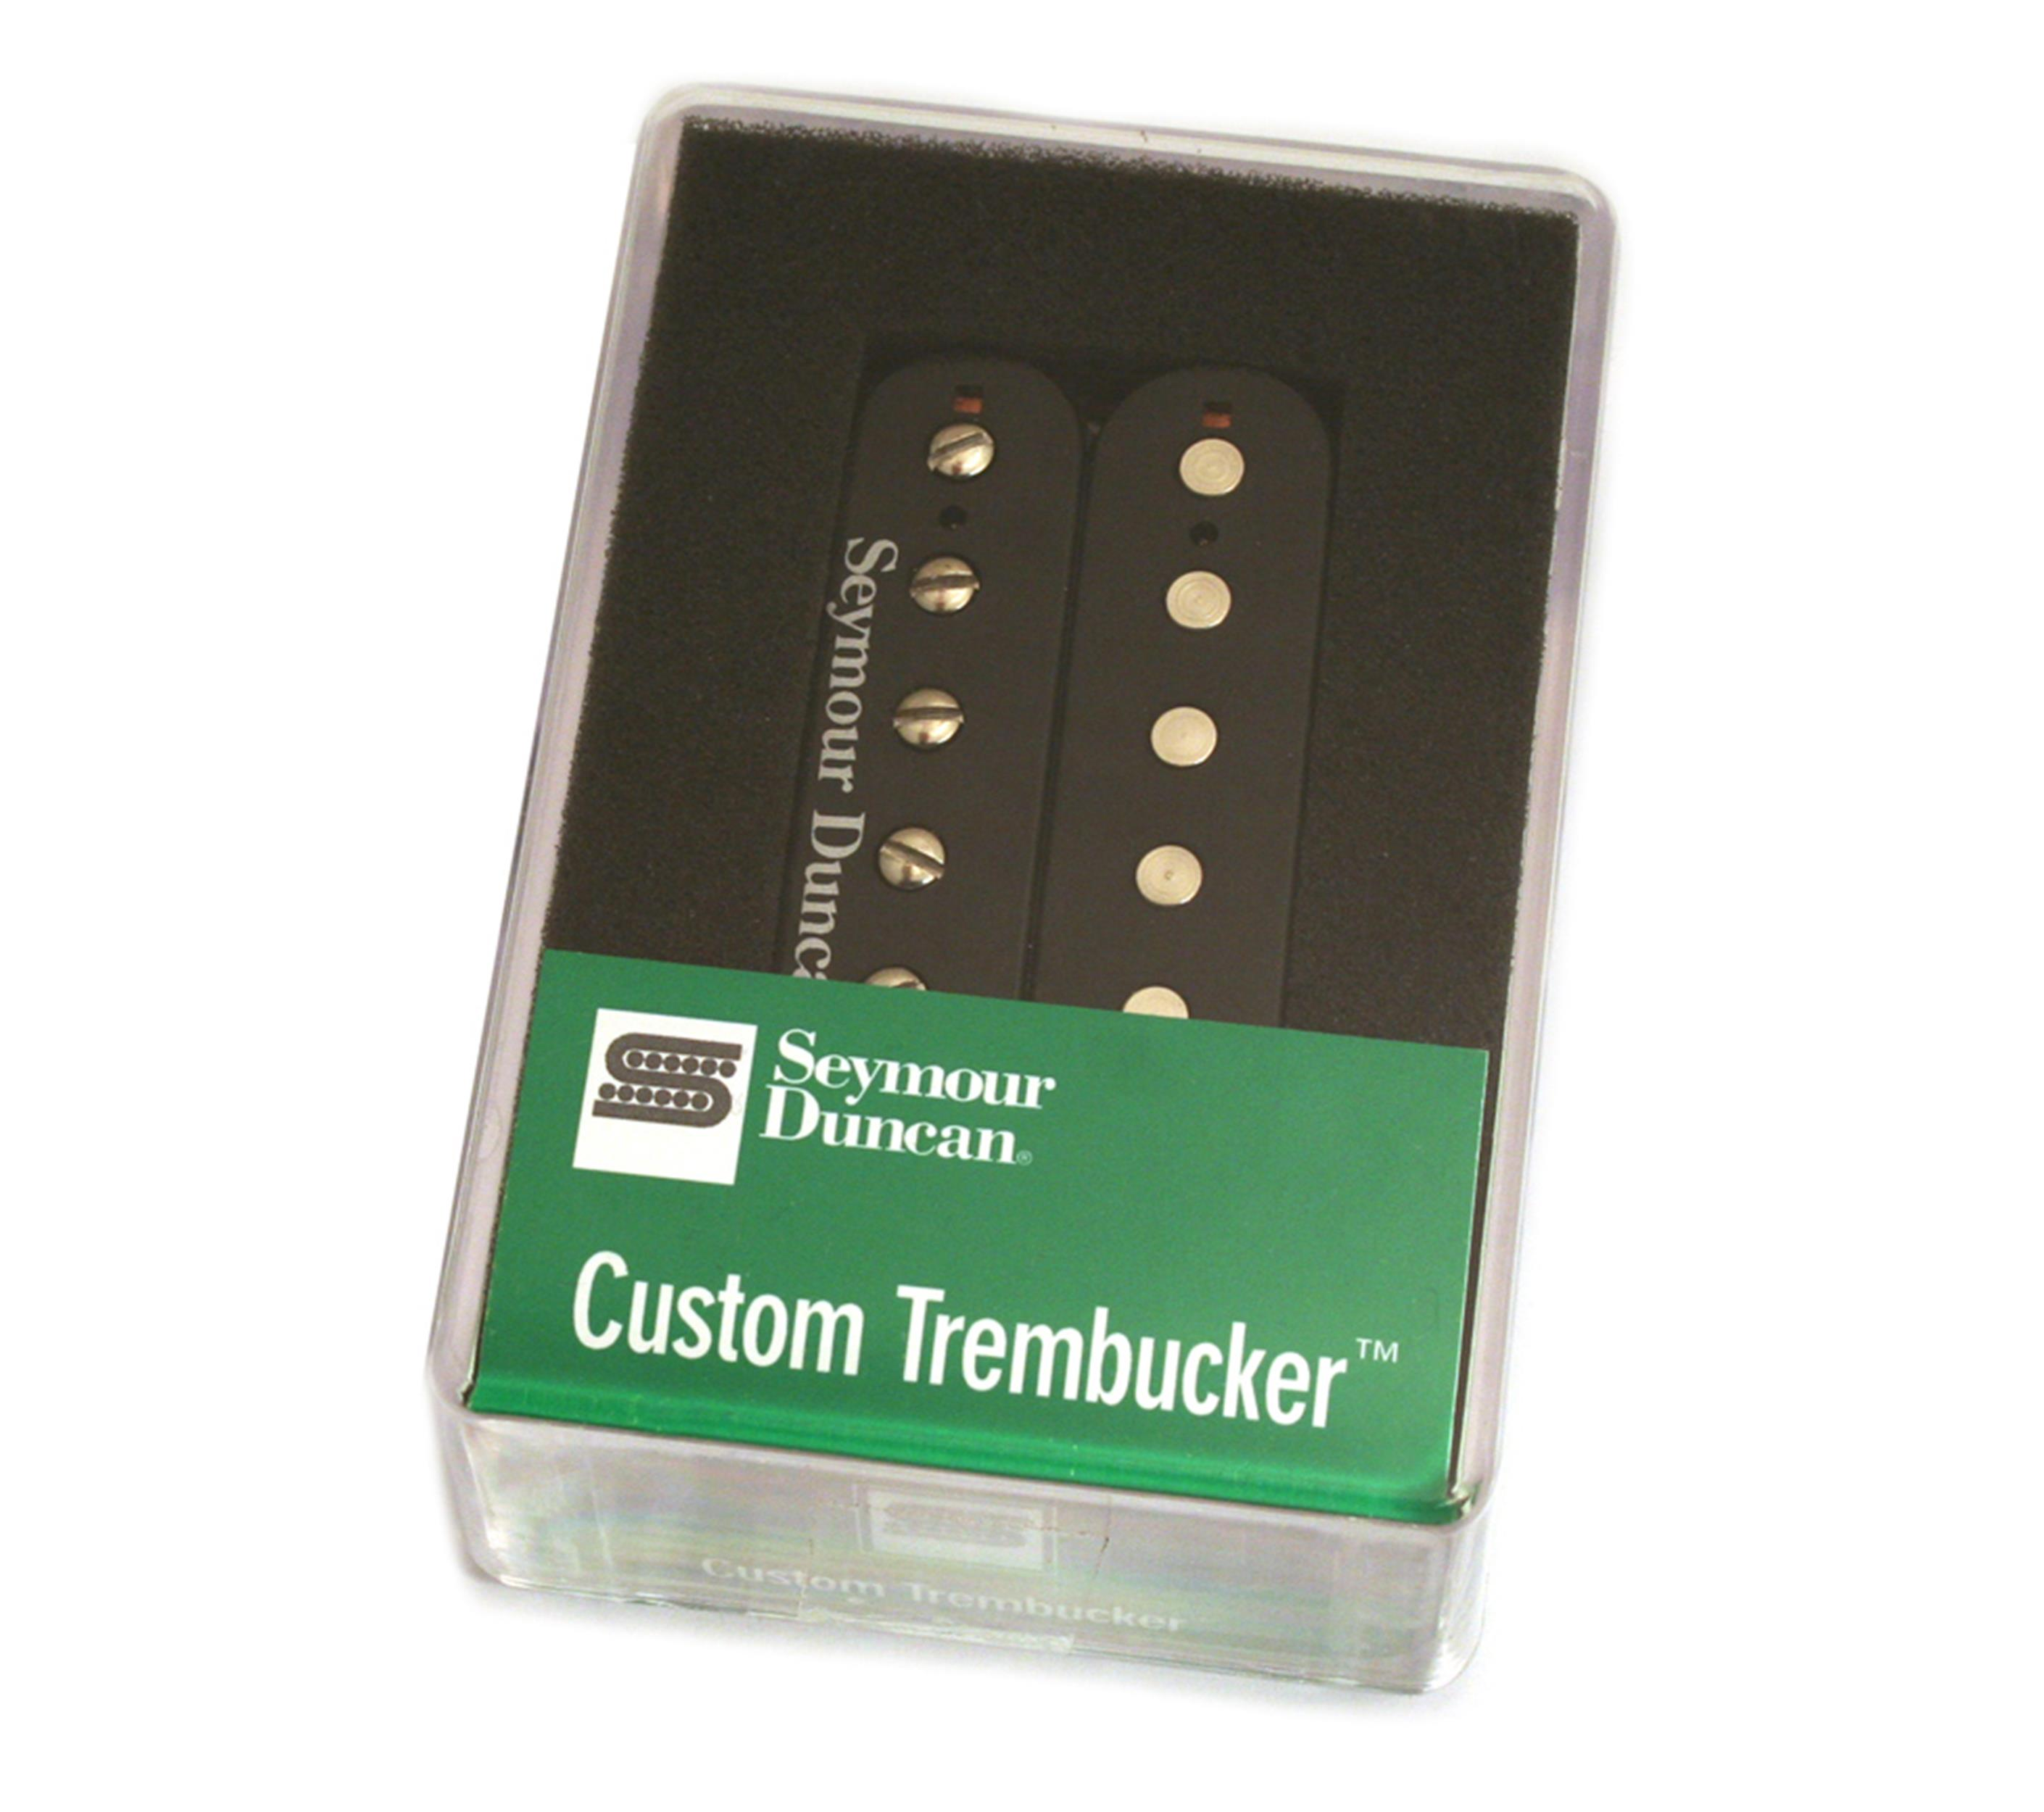 SEYMOUR-DUNCAN TB 5 B CUSTOM TREMBUCKER BRIDGE BLACK